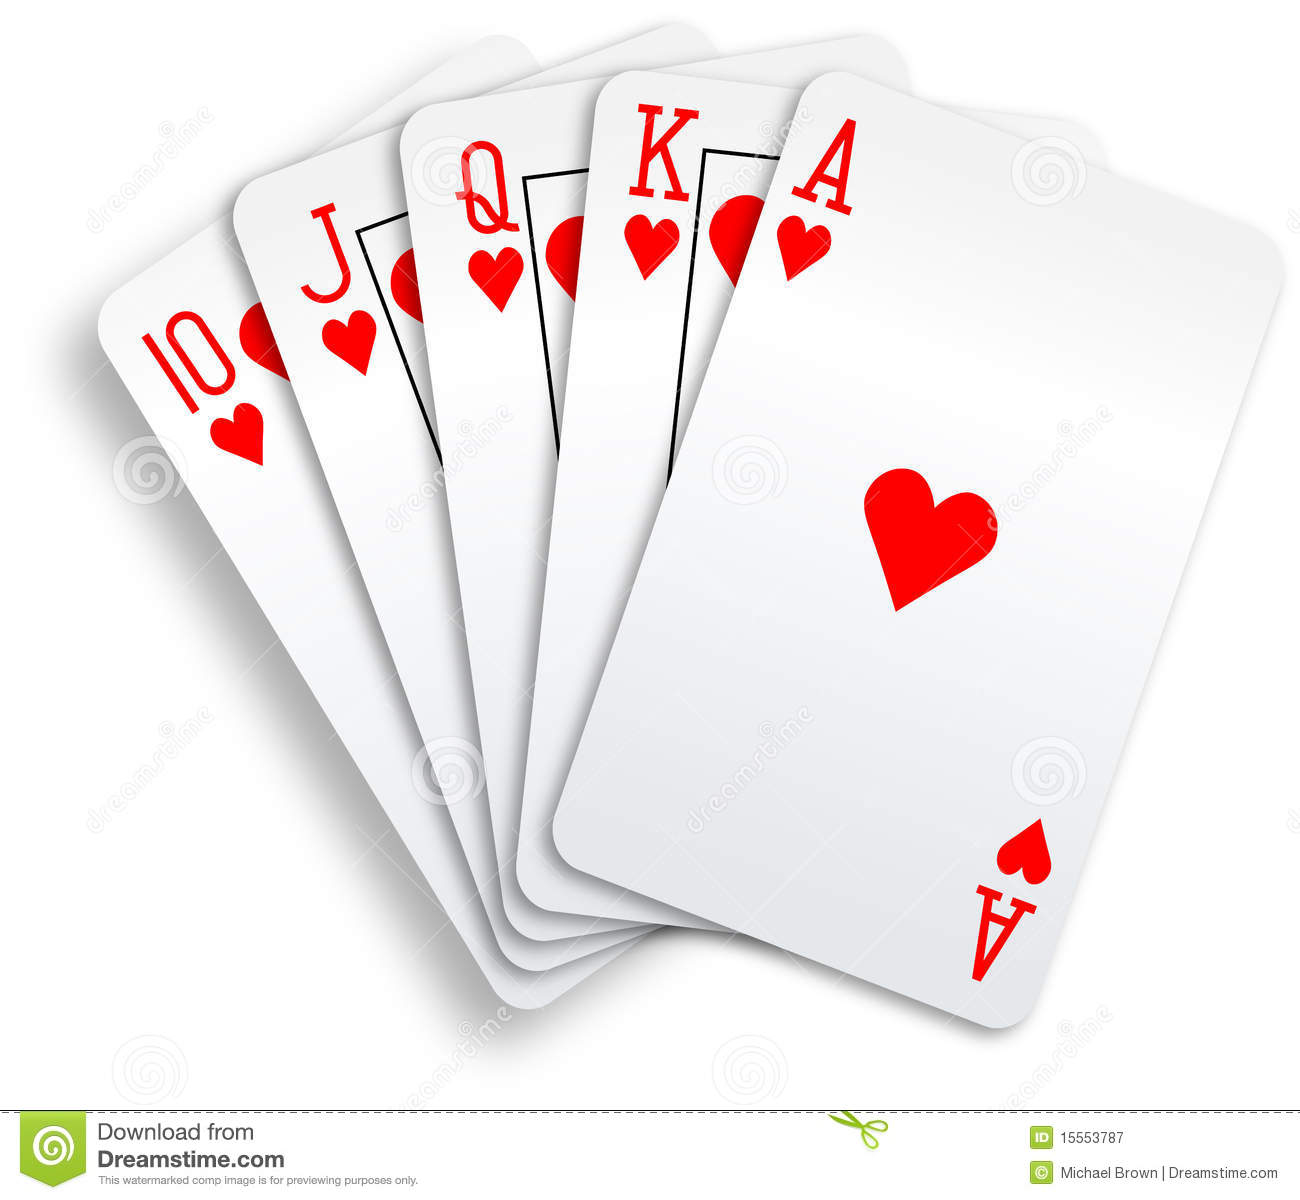 Hearts Royal Flush Playing Cards Poker Hand Royalty Free Stock